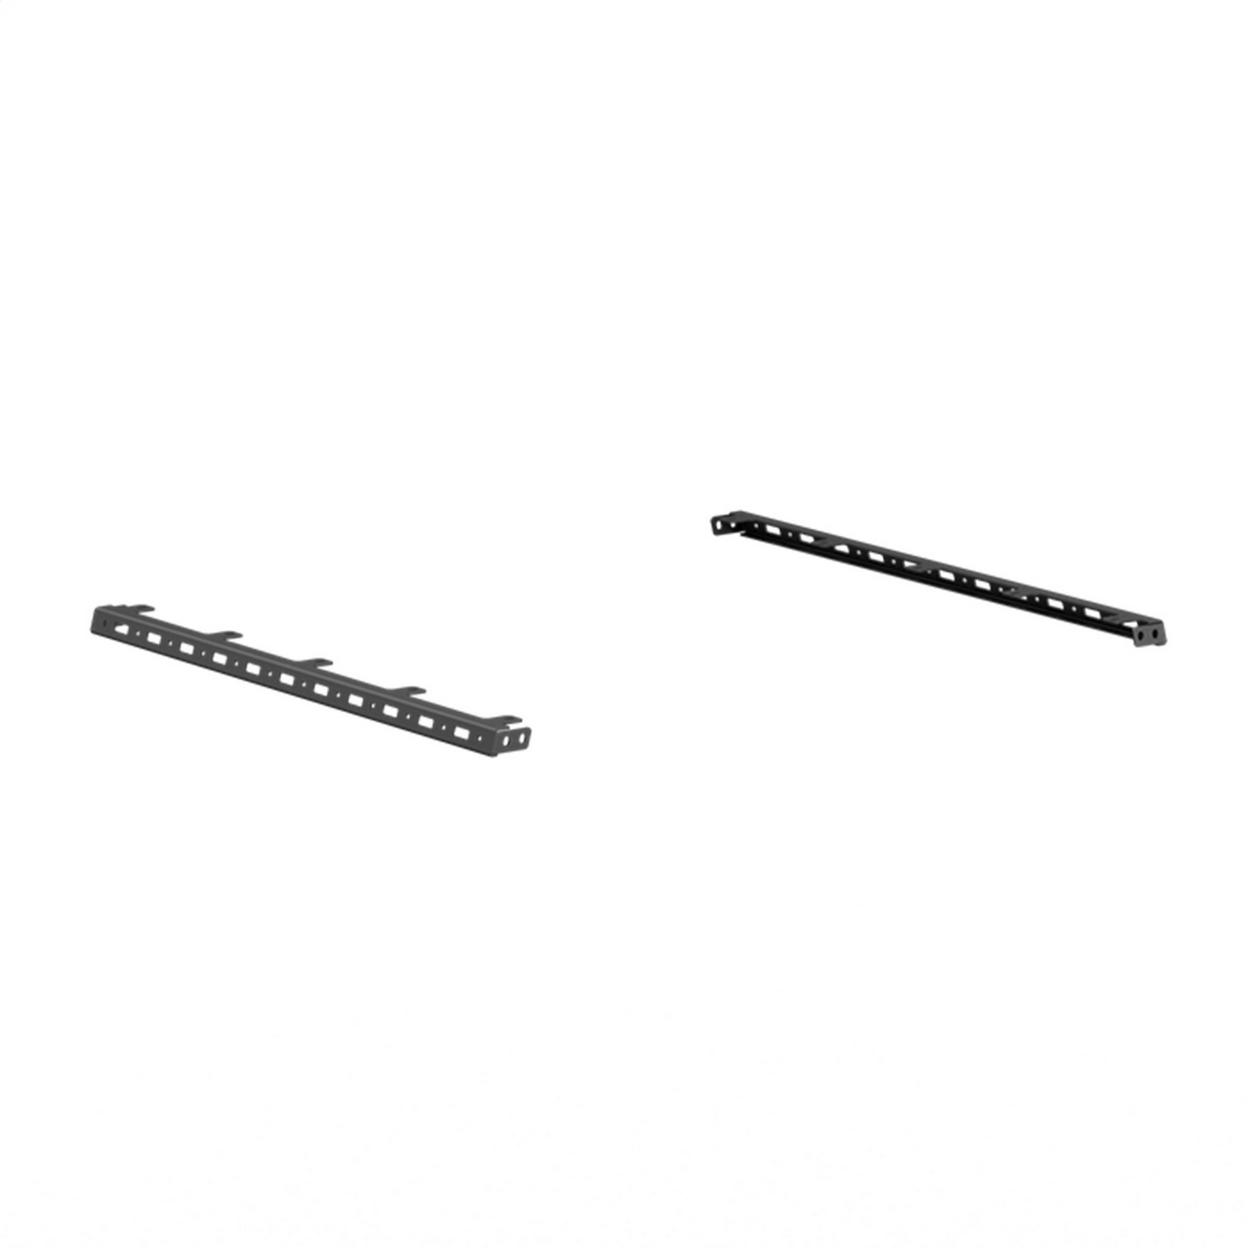 Road Armor 650BRS-TLMK-590 TRECK Rail and Light Mount